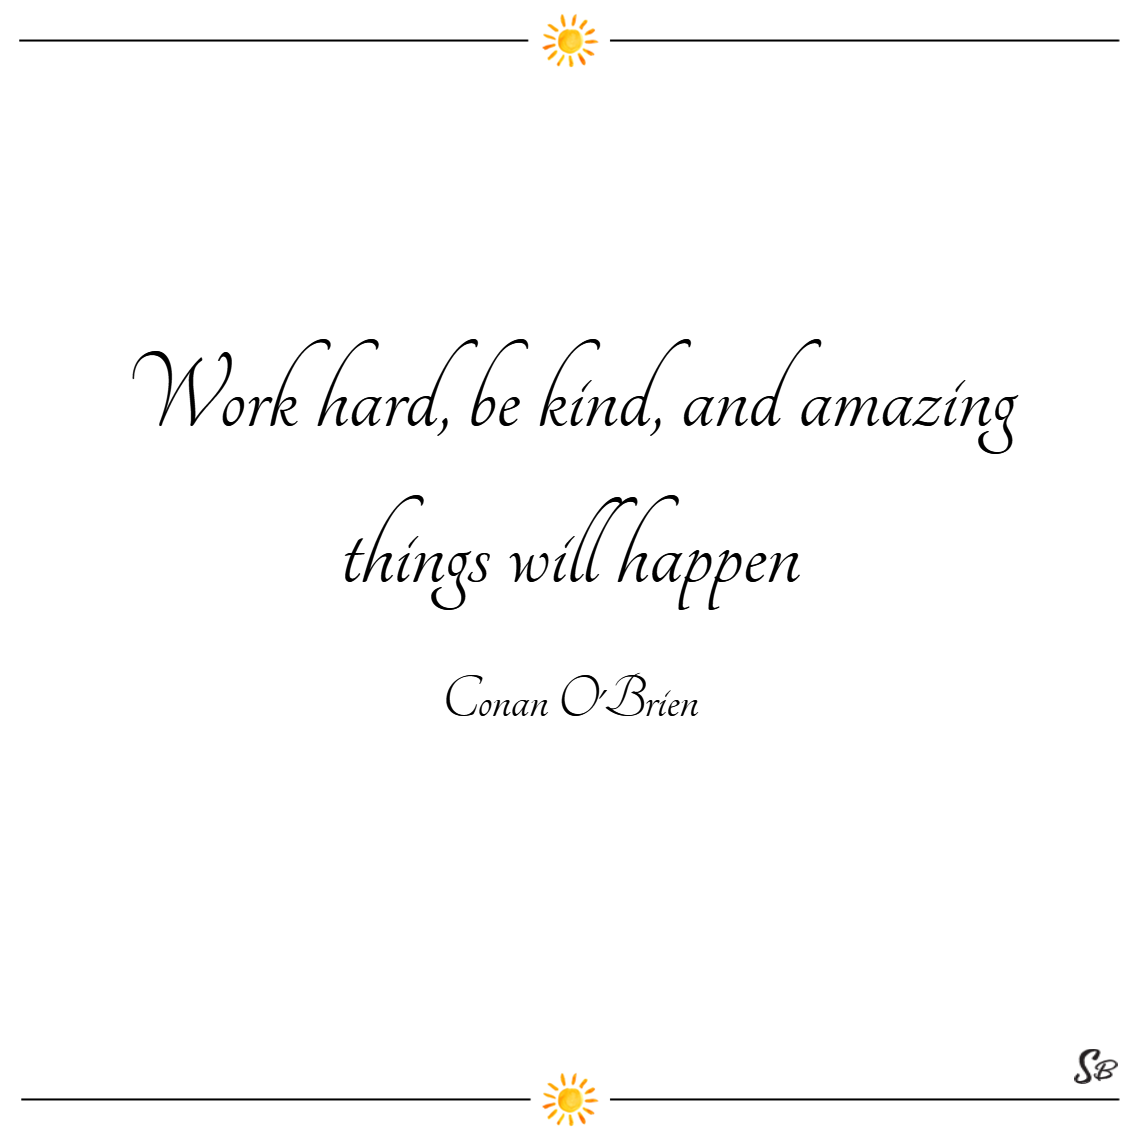 Work hard, be kind, and amazing things will happen. – conan o'brien